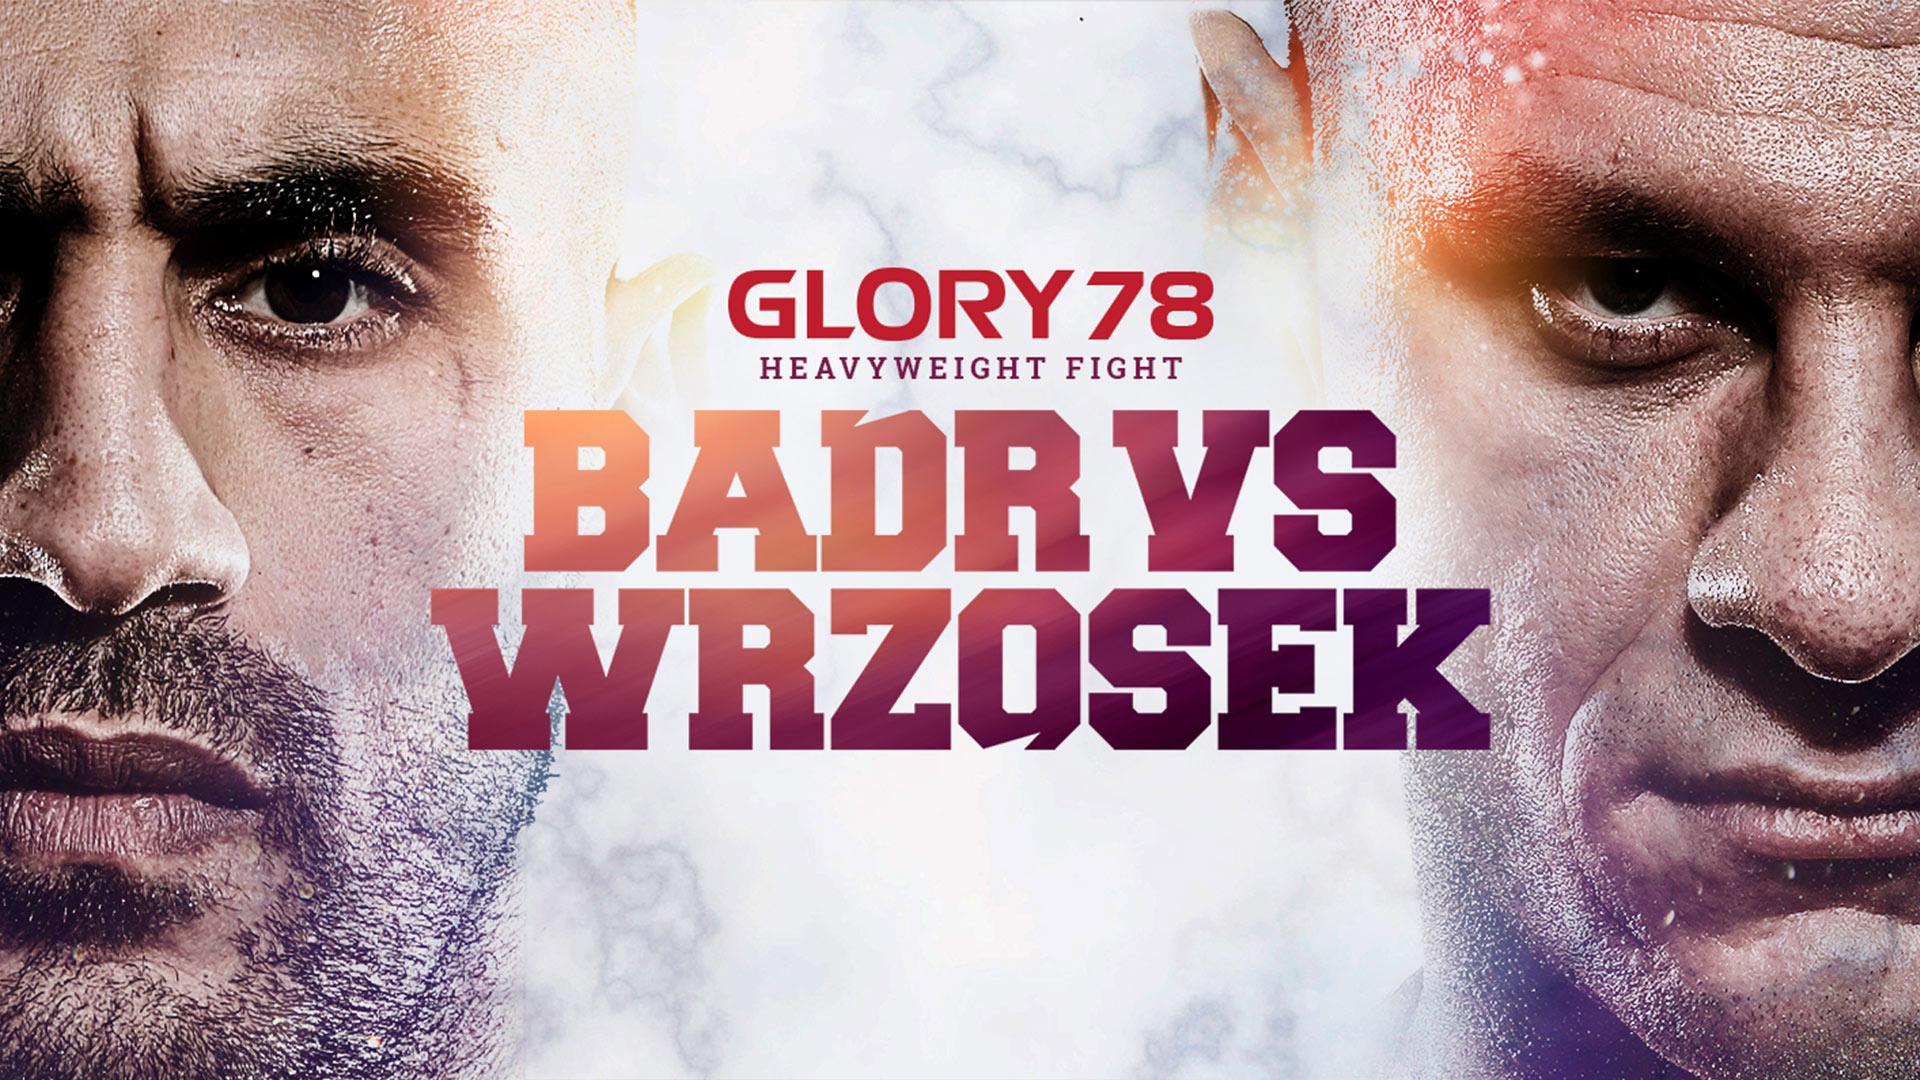 GLORY 78 Badr vs Wrzosek